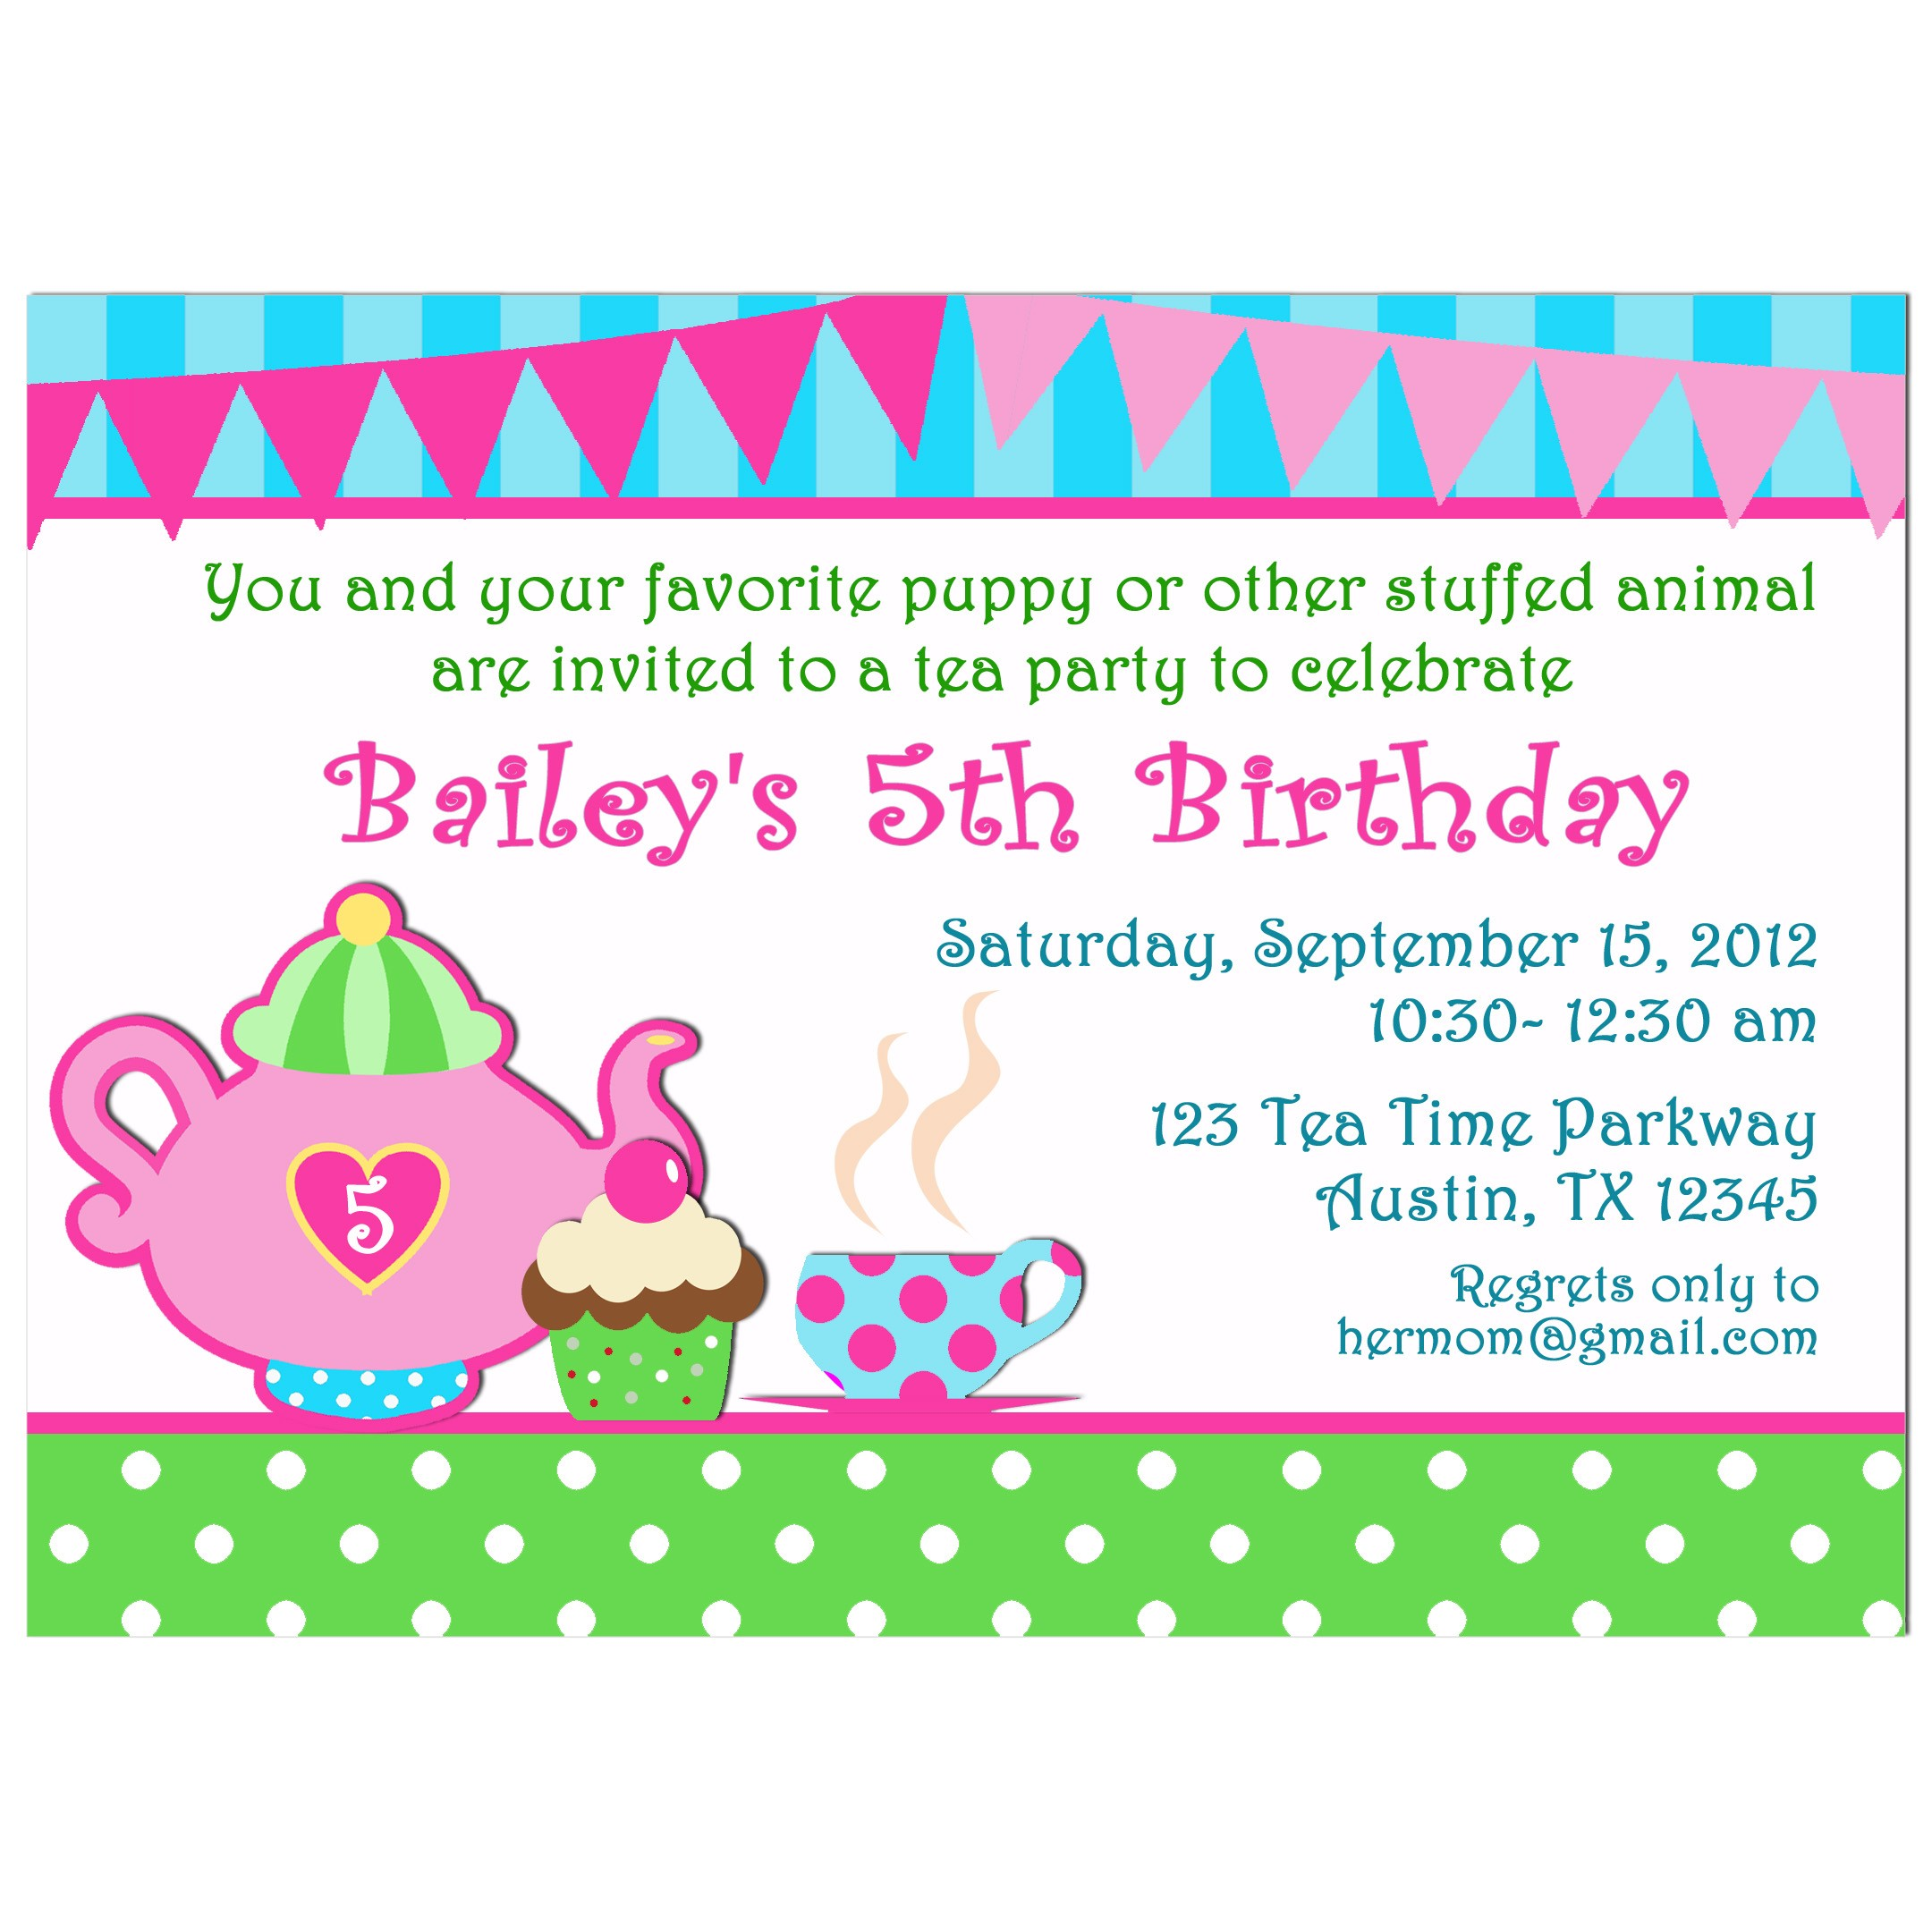 Girl\'s Tea Party Birthday Invitation by That Party Chick - My Little ...